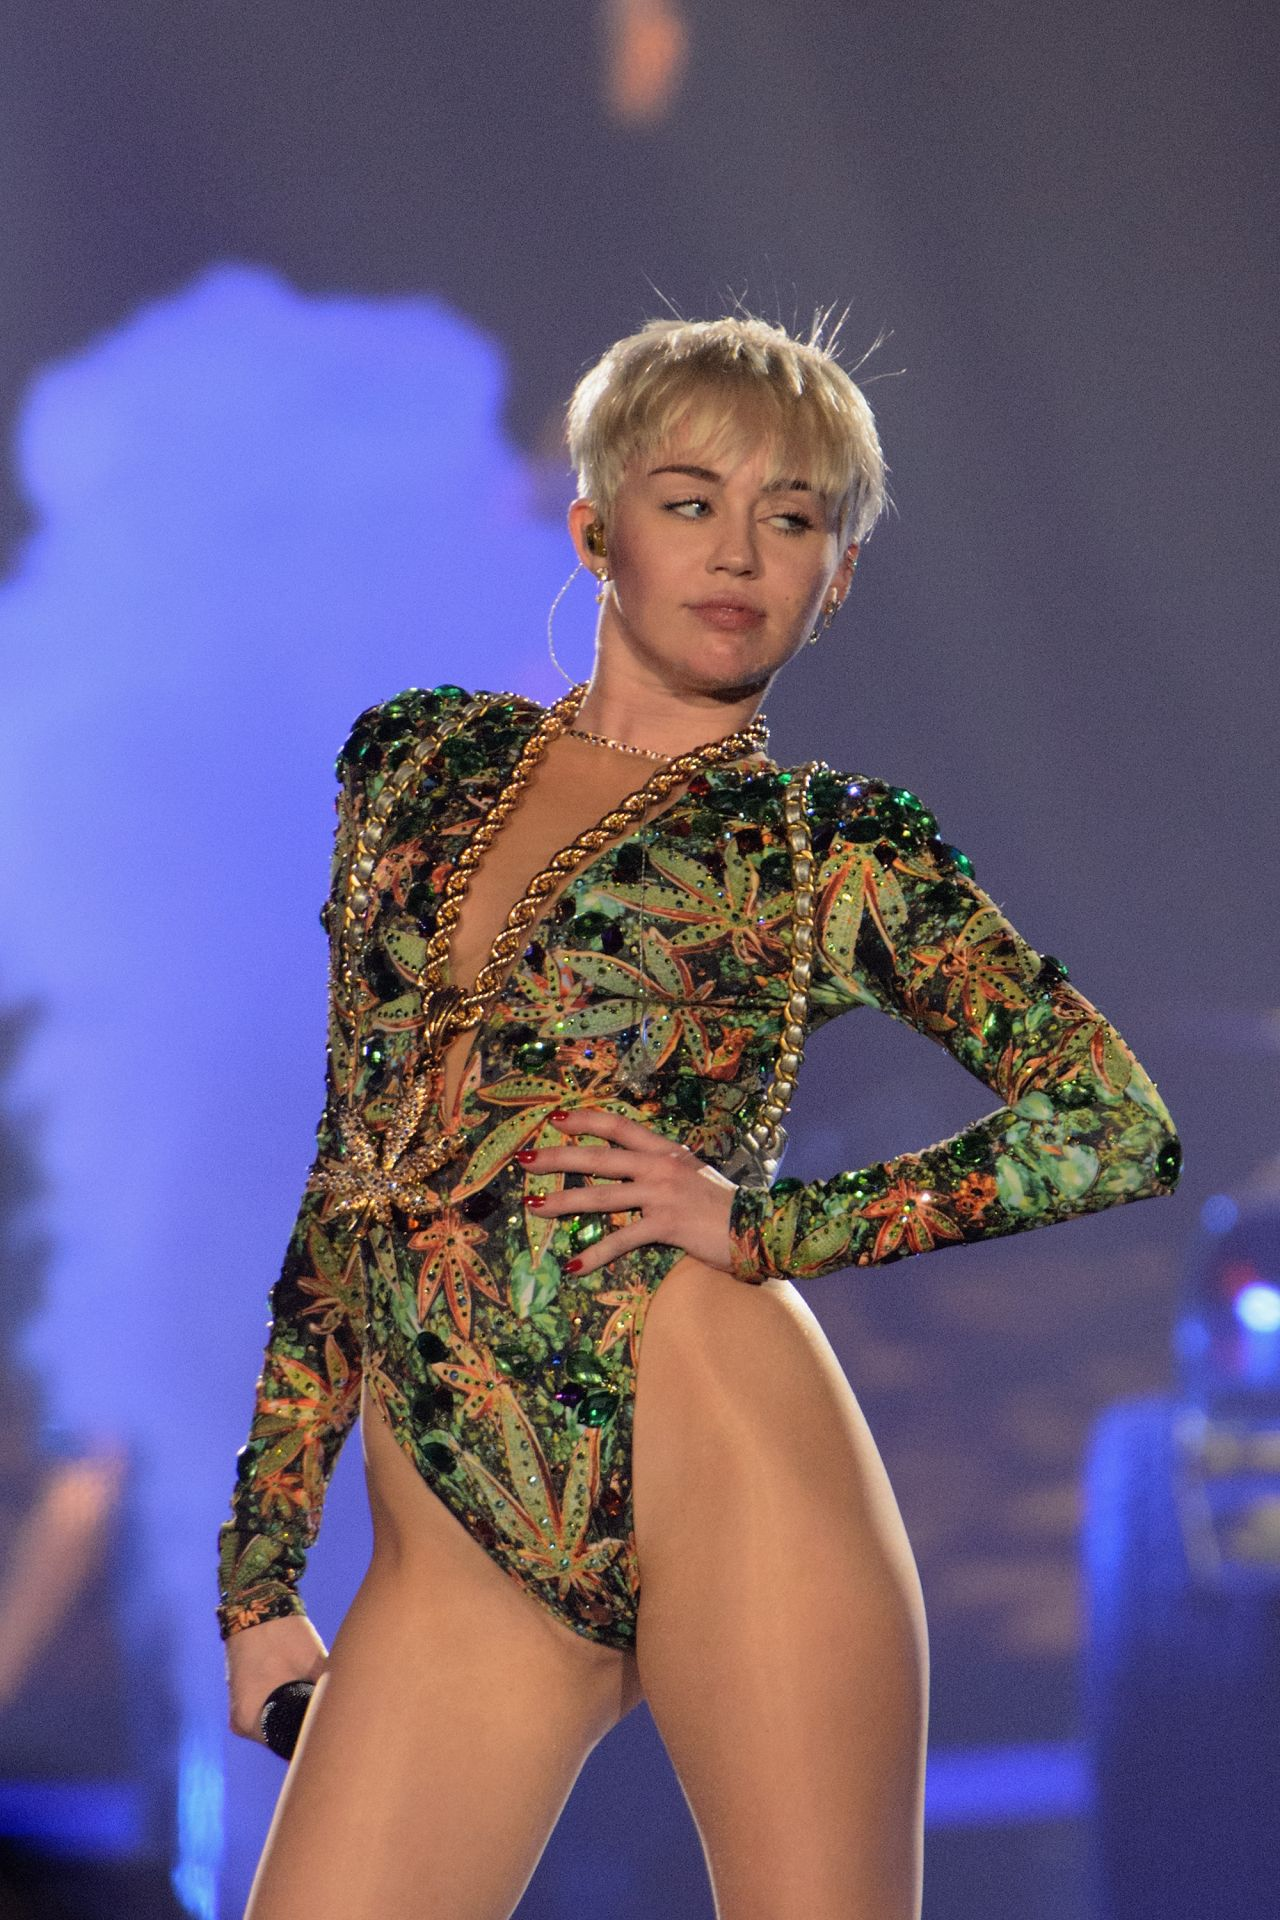 Miley Cyrus Performs at Bangerz Tour in Rosemont, March 2014